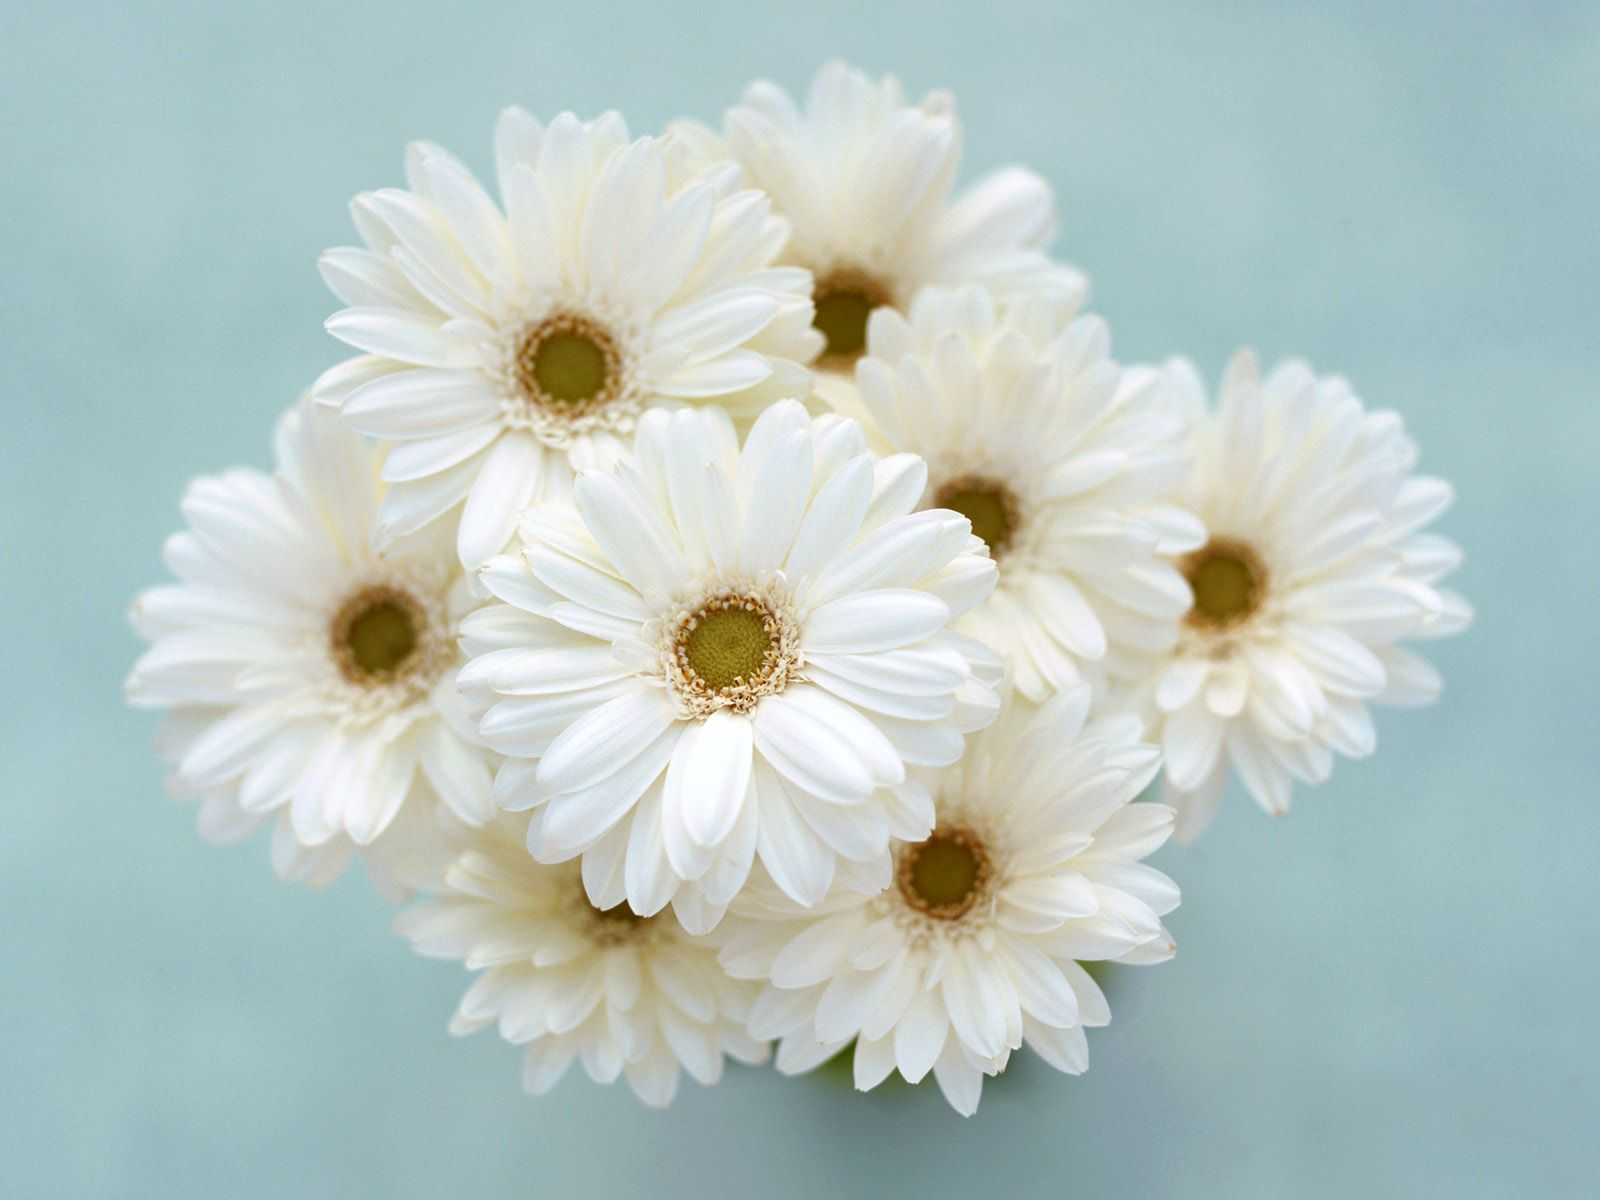 What Type Of Flower Is This Flowers Pinterest Flower And Flowers